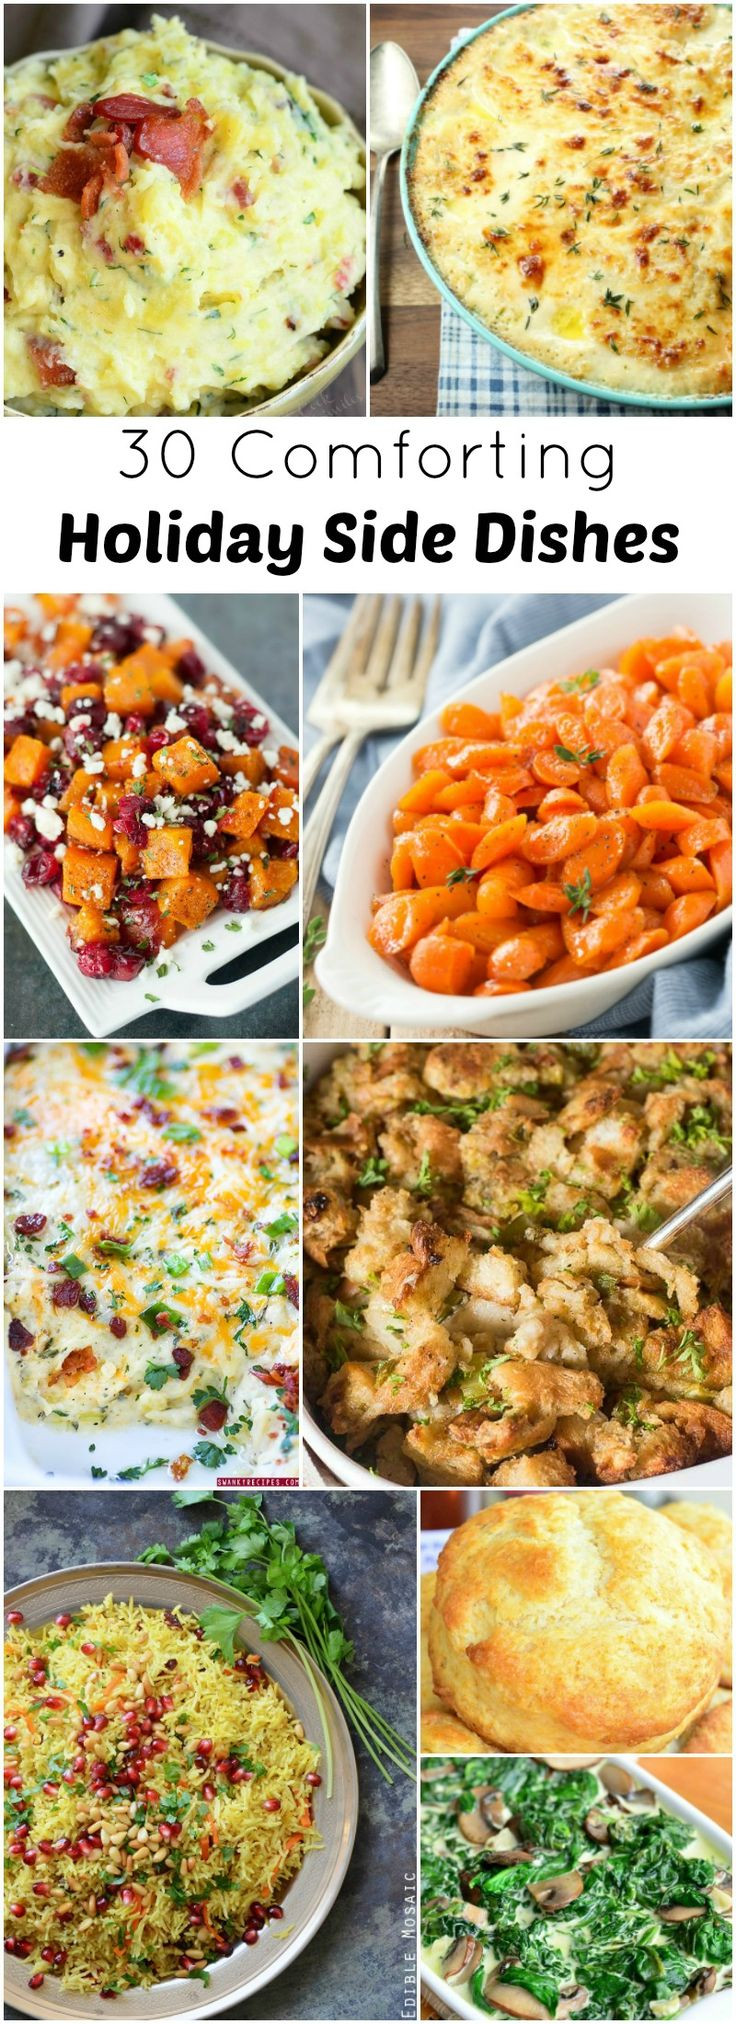 Sides For Christmas Dinner  17 Best ideas about Holiday Side Dishes on Pinterest